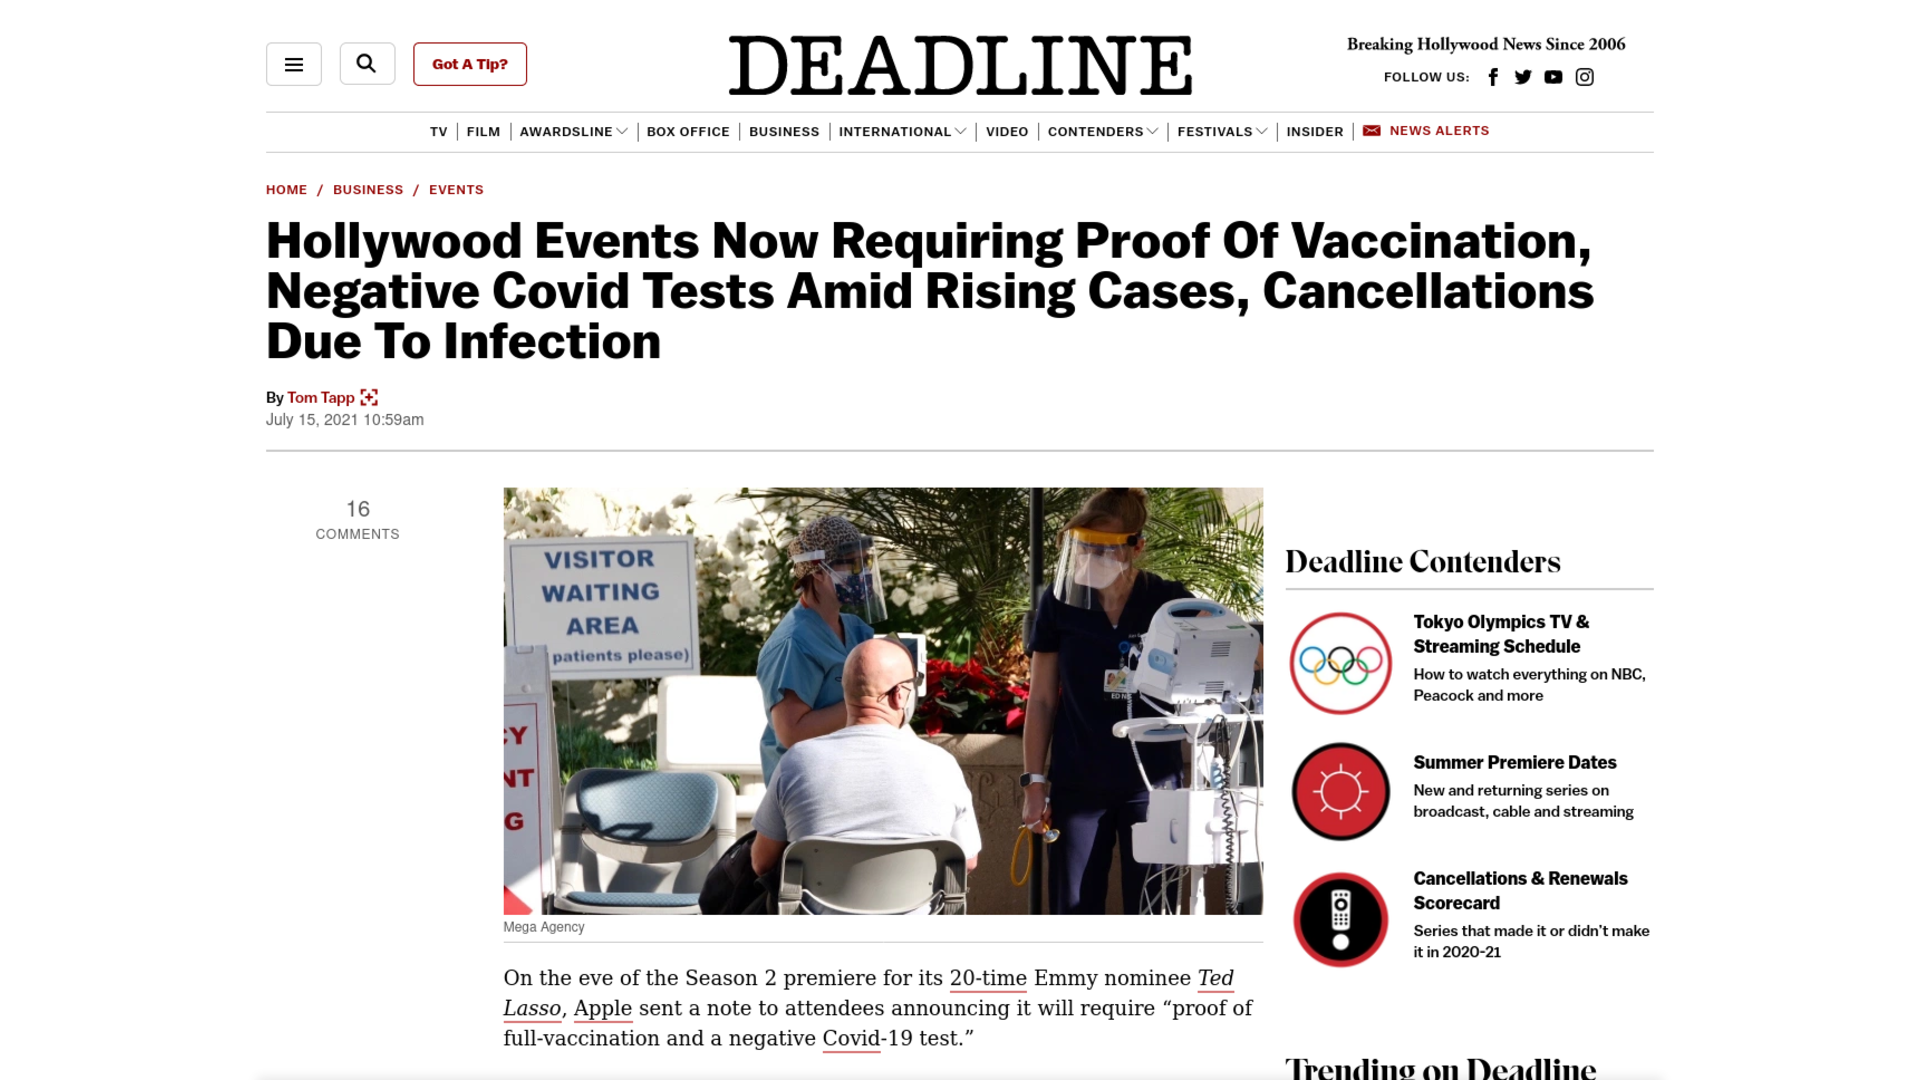 Fairness Rocks News Hollywood Events Now Requiring Proof Of Vaccination, Negative Covid Tests Amid Rising Cases, Cancellations Due To Infection